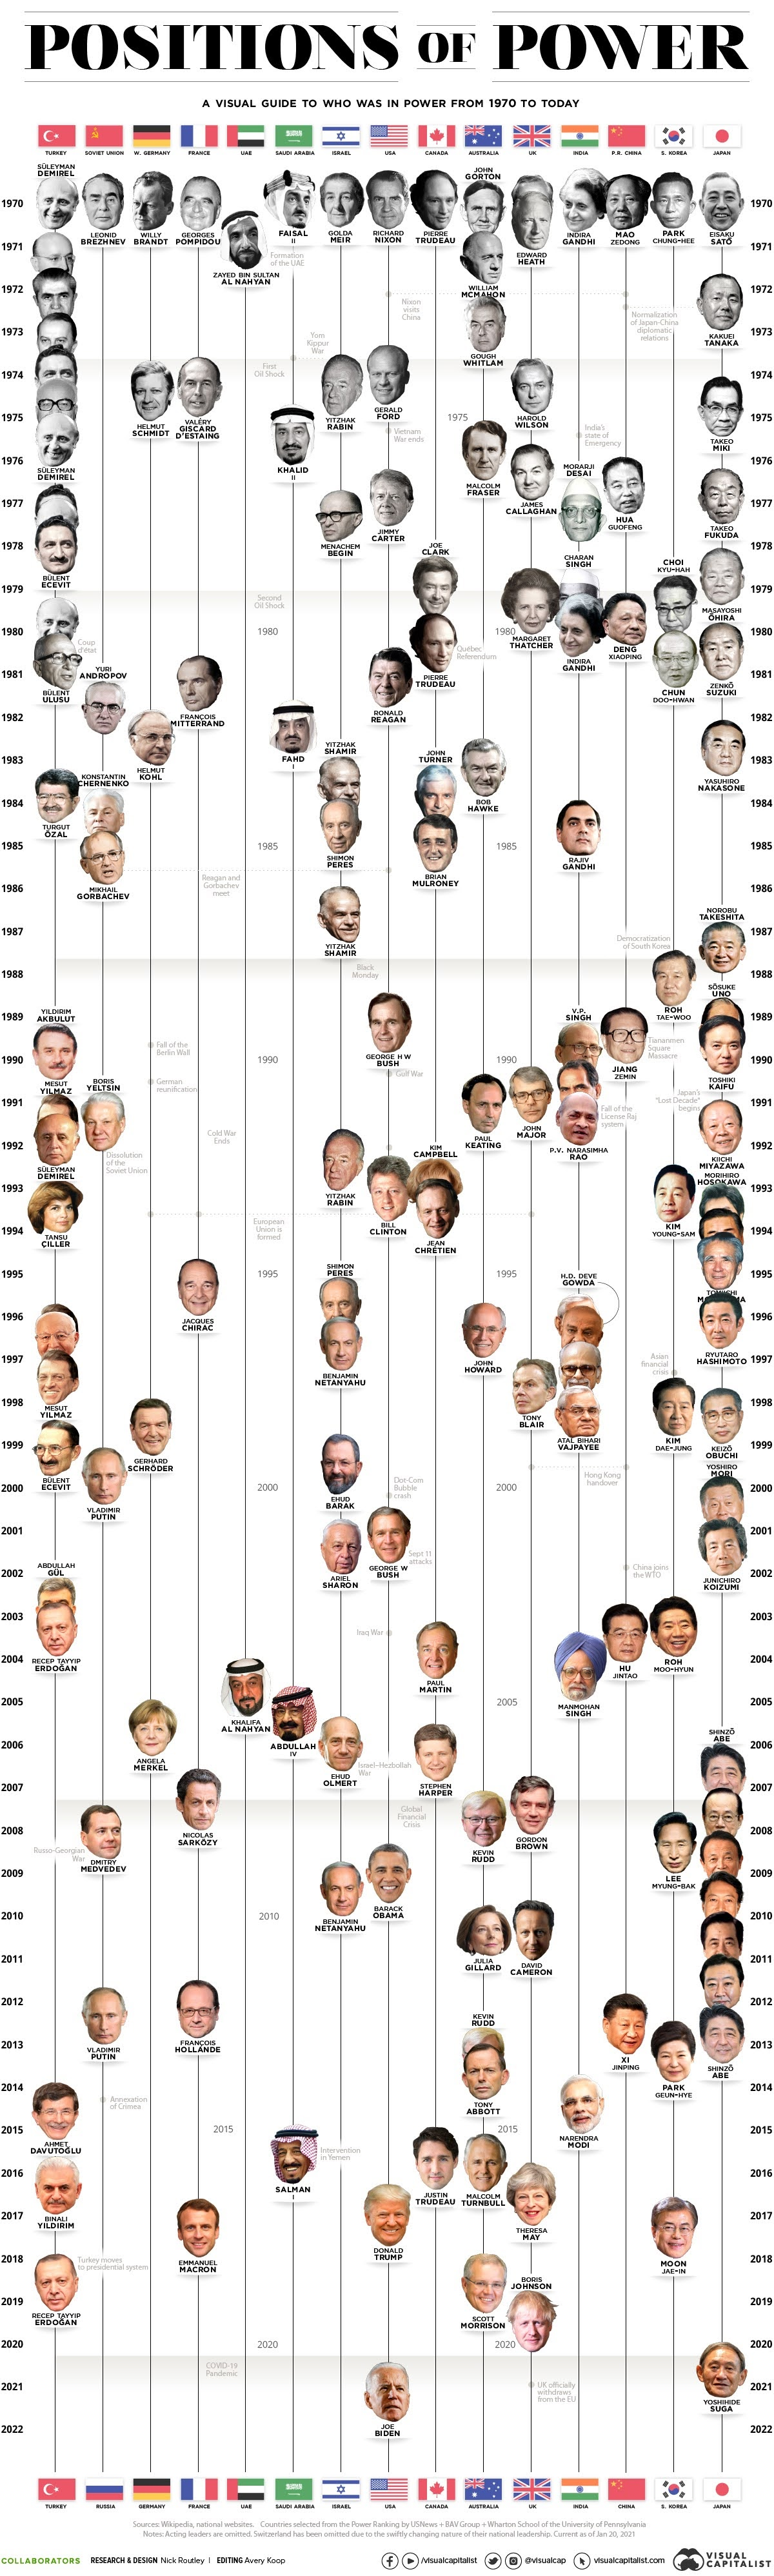 visualized-the-world-leaders-in-positions-of-power-1970-today-infographic